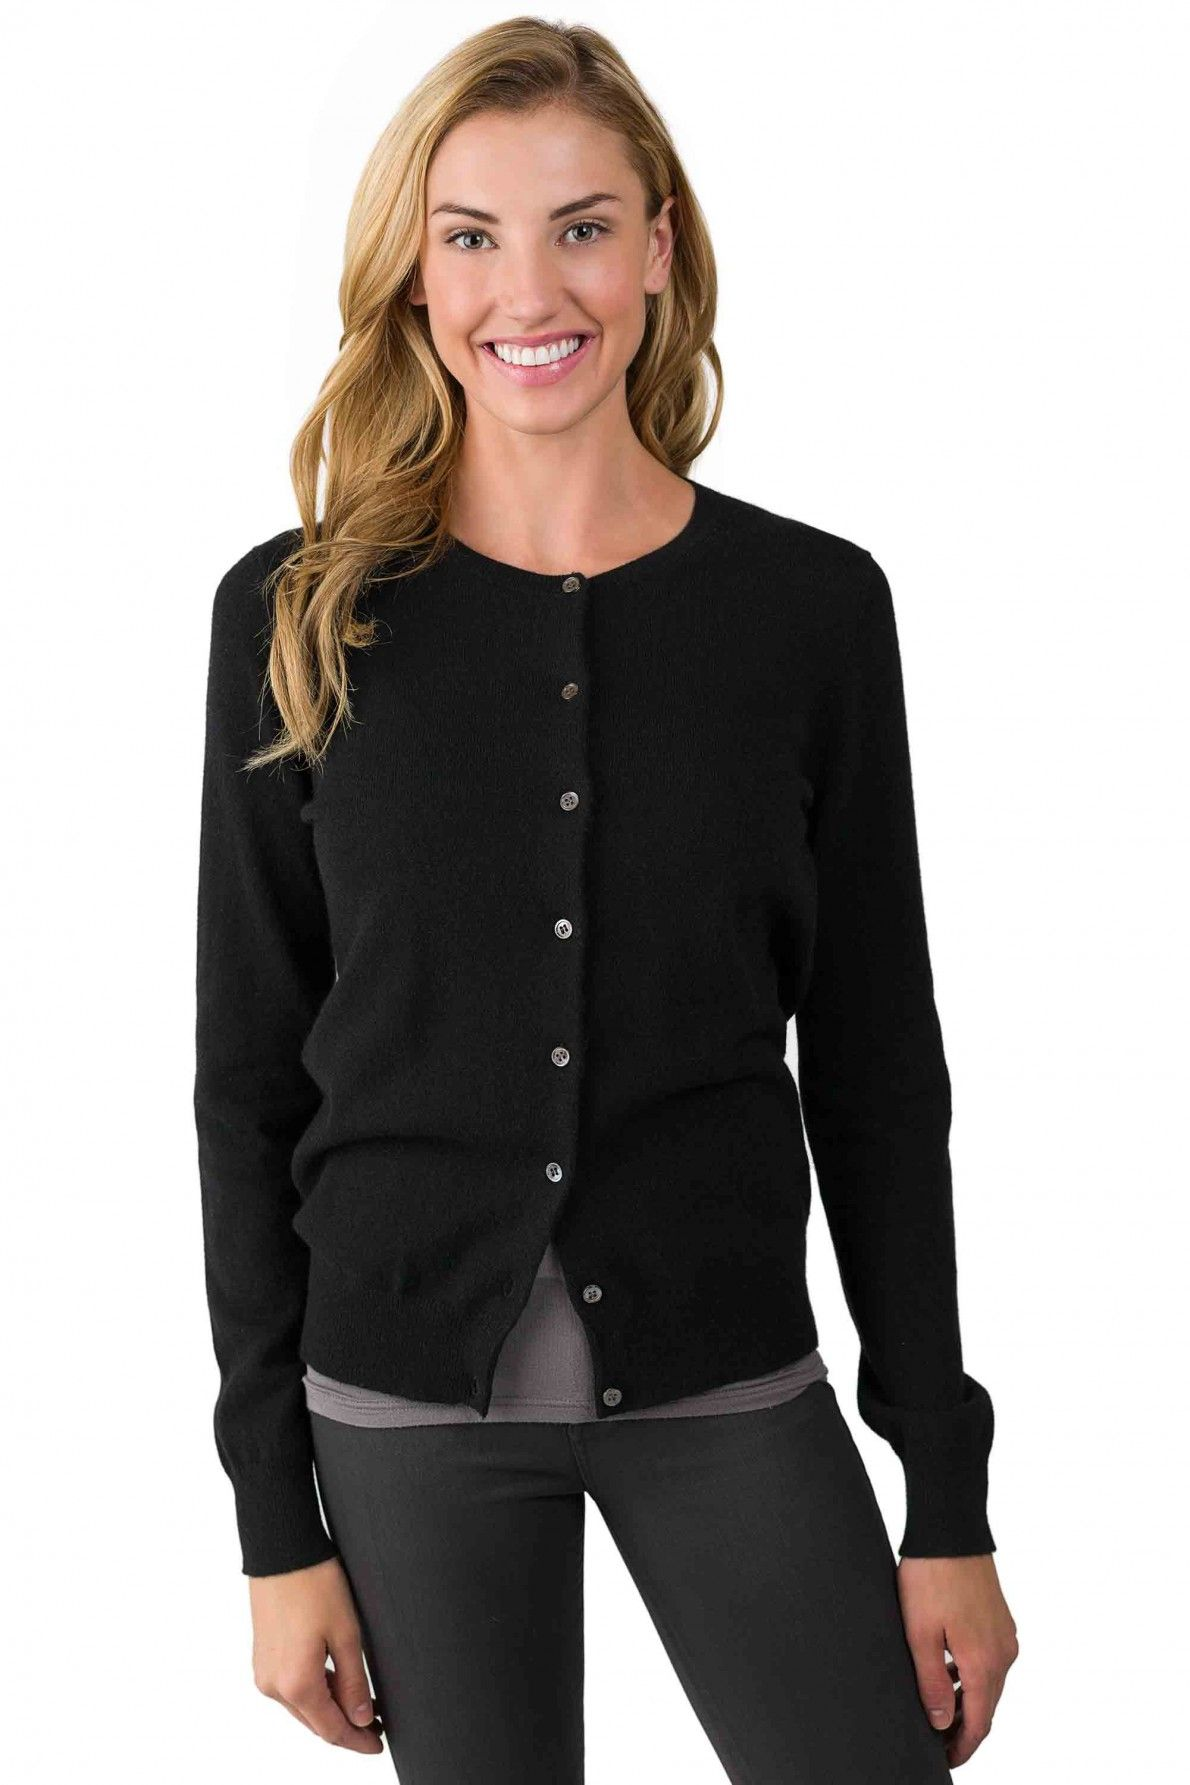 Black Cashmere Button Front Cardigan Sweater right front view | A ...